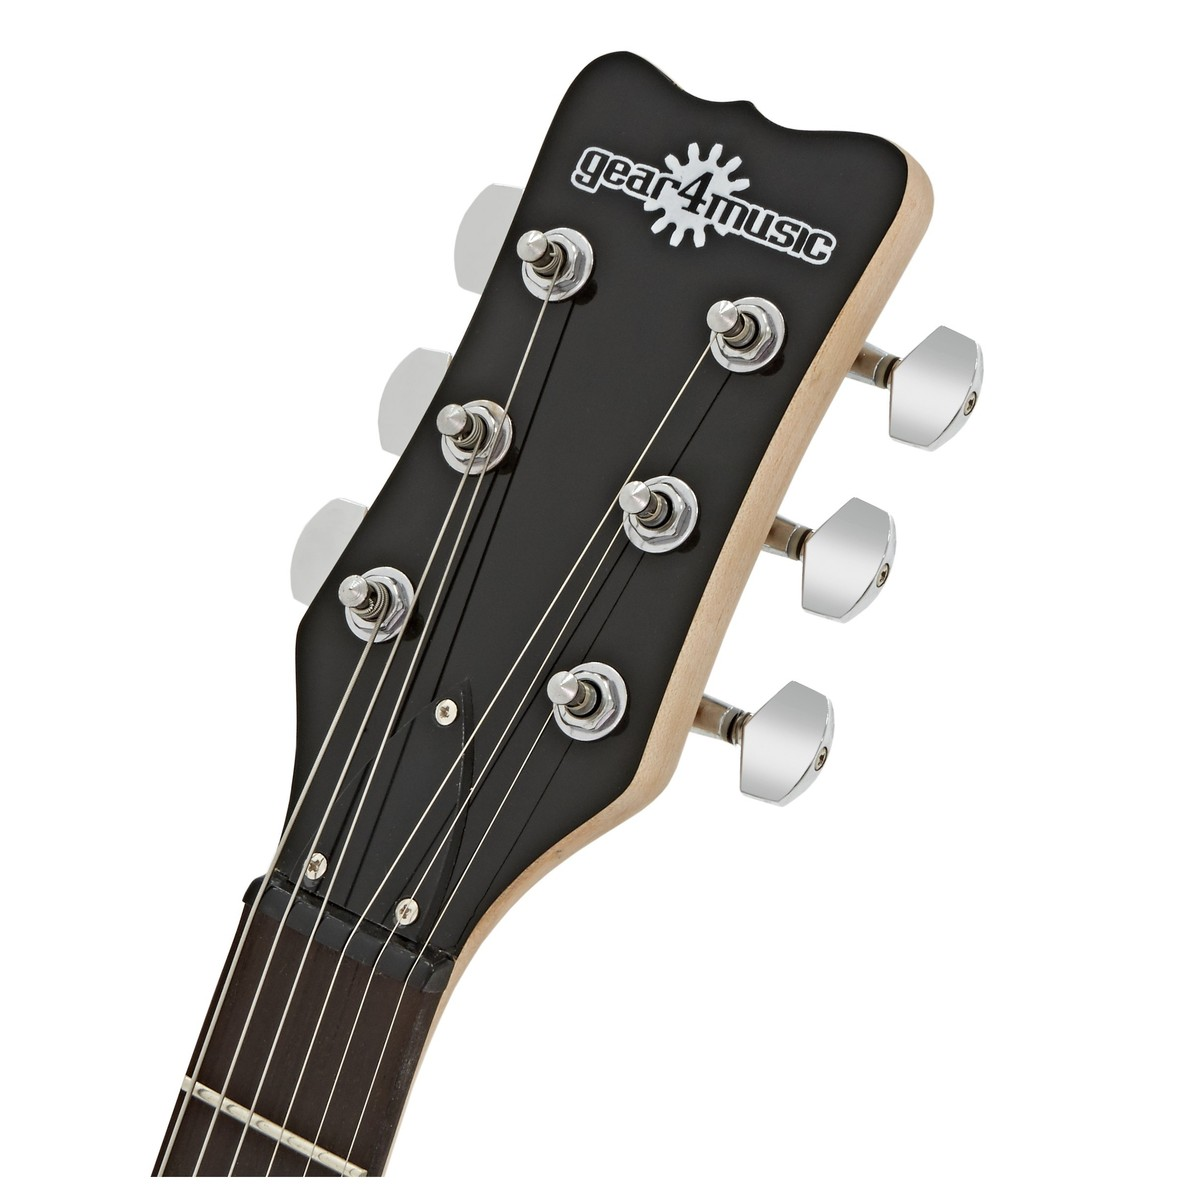 new jersey ii electric guitar by gear4music vintage sunburst bstock at gear4music. Black Bedroom Furniture Sets. Home Design Ideas